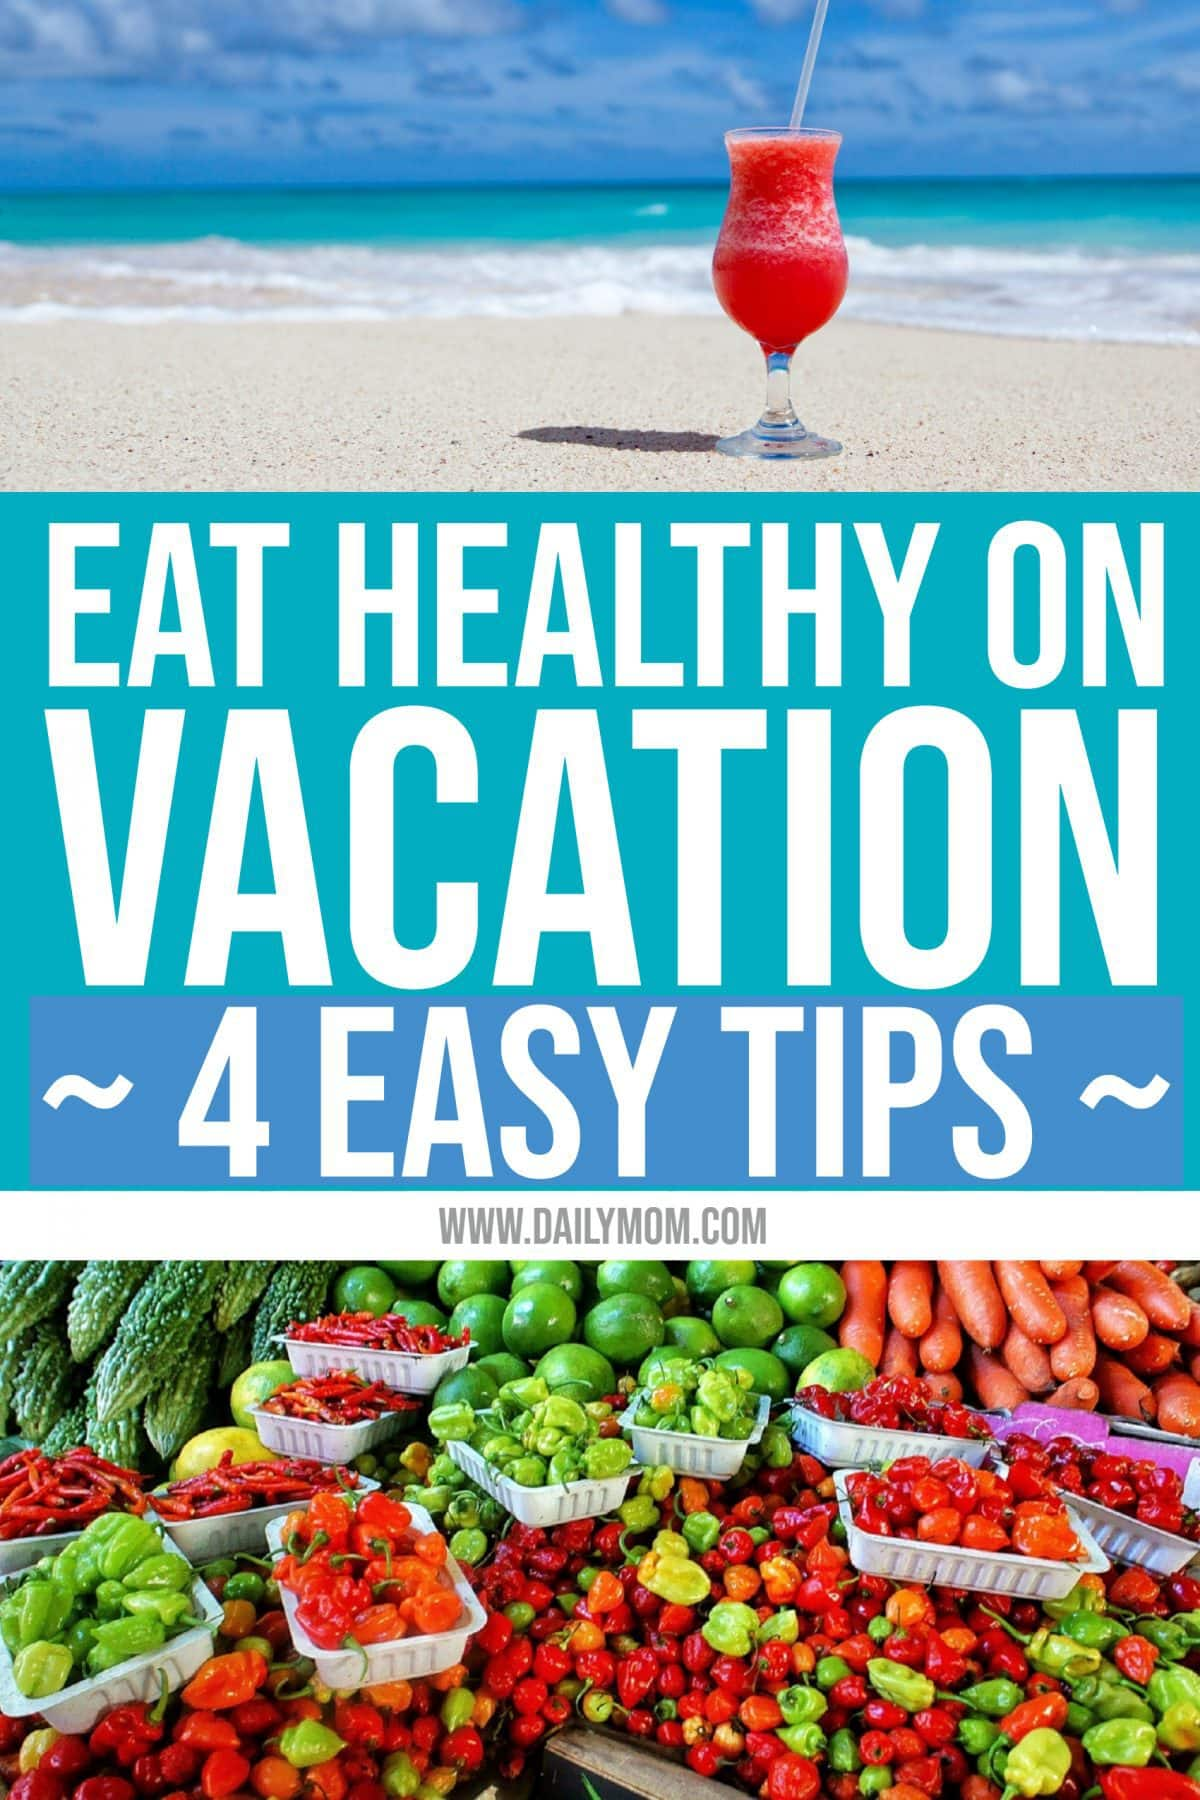 4 Easy Tips To Eat Healthy On Vacation